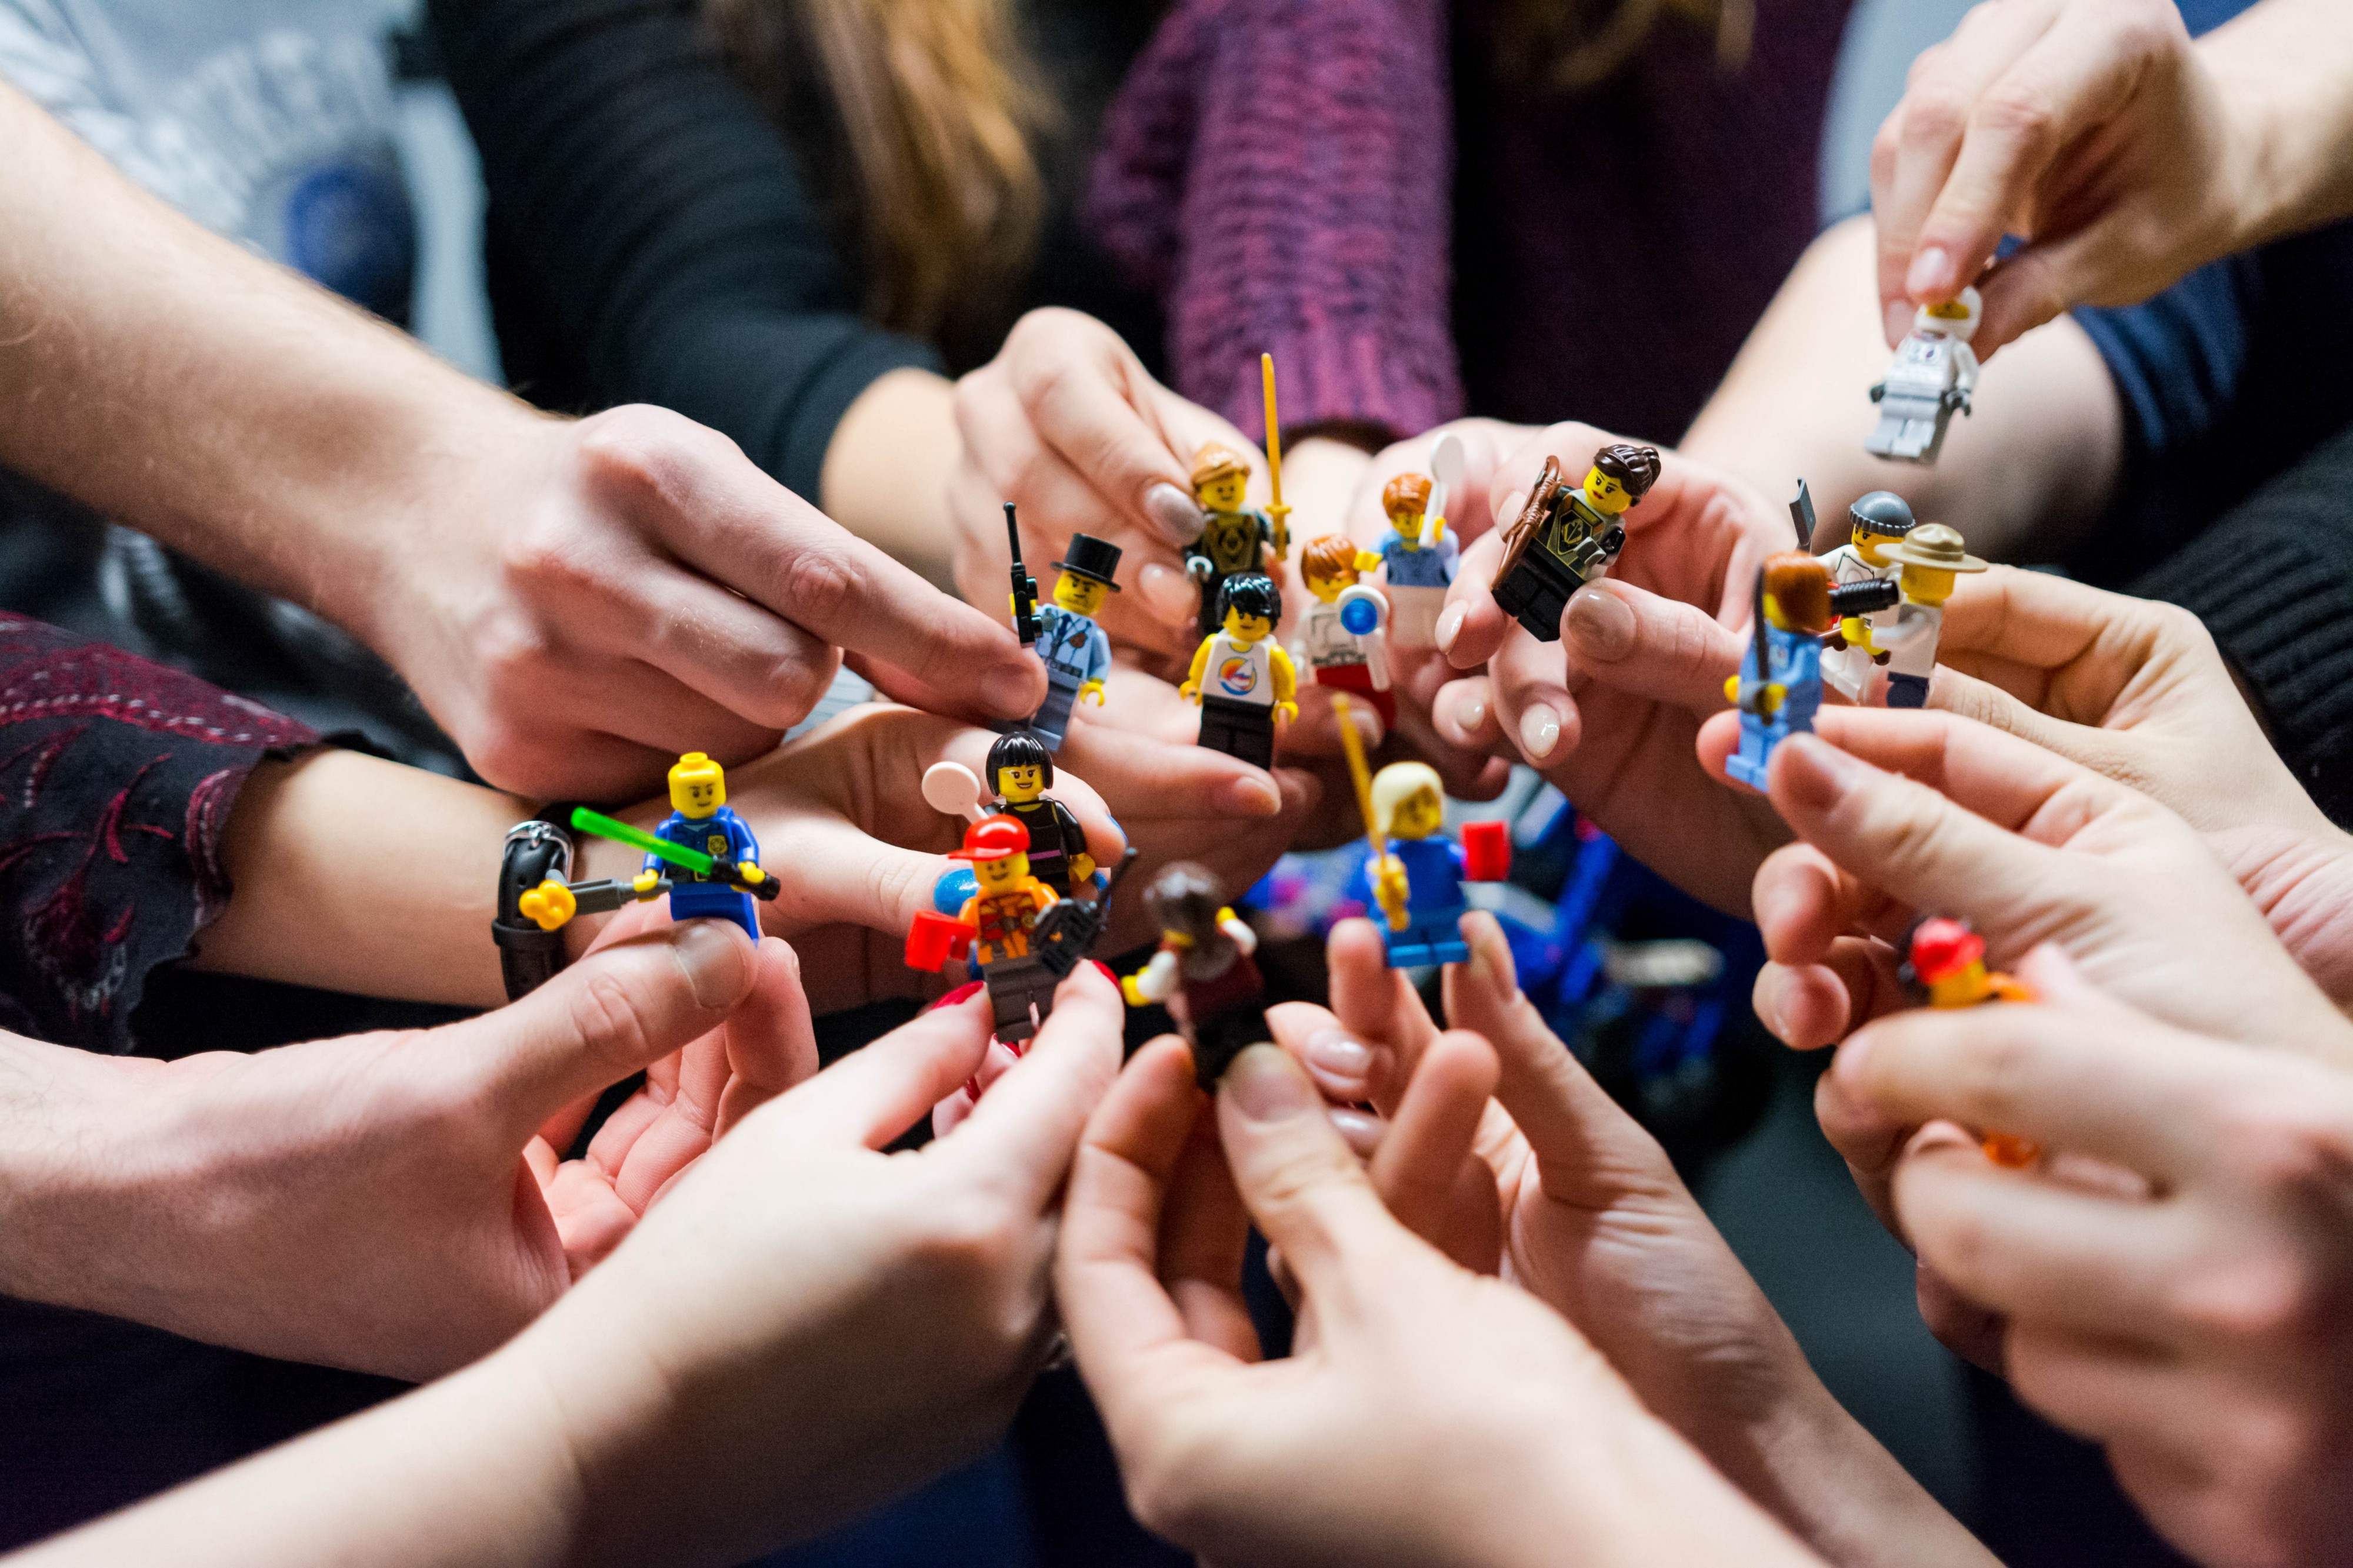 lego picture, showing collaboration